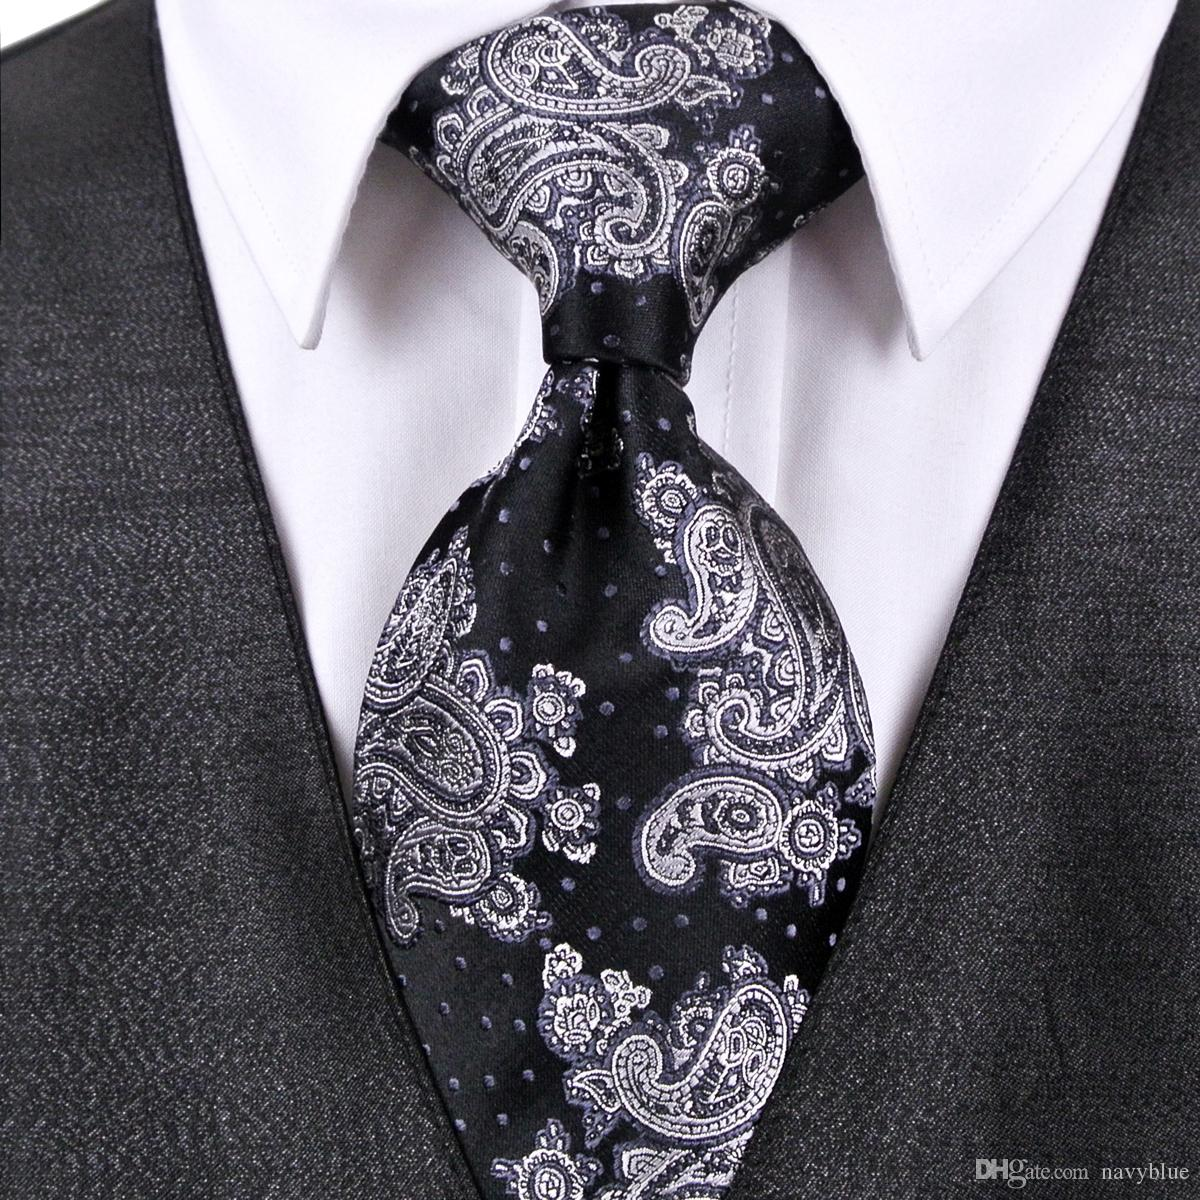 a3280e9a397 K12 Paisley Floral Black Gray Grey White Mens Tie Sets Neckties  Handkerchief 100% Silk Jacquard Woven Wholesale Classy Knit Ties Knitted Tie  From Navyblue